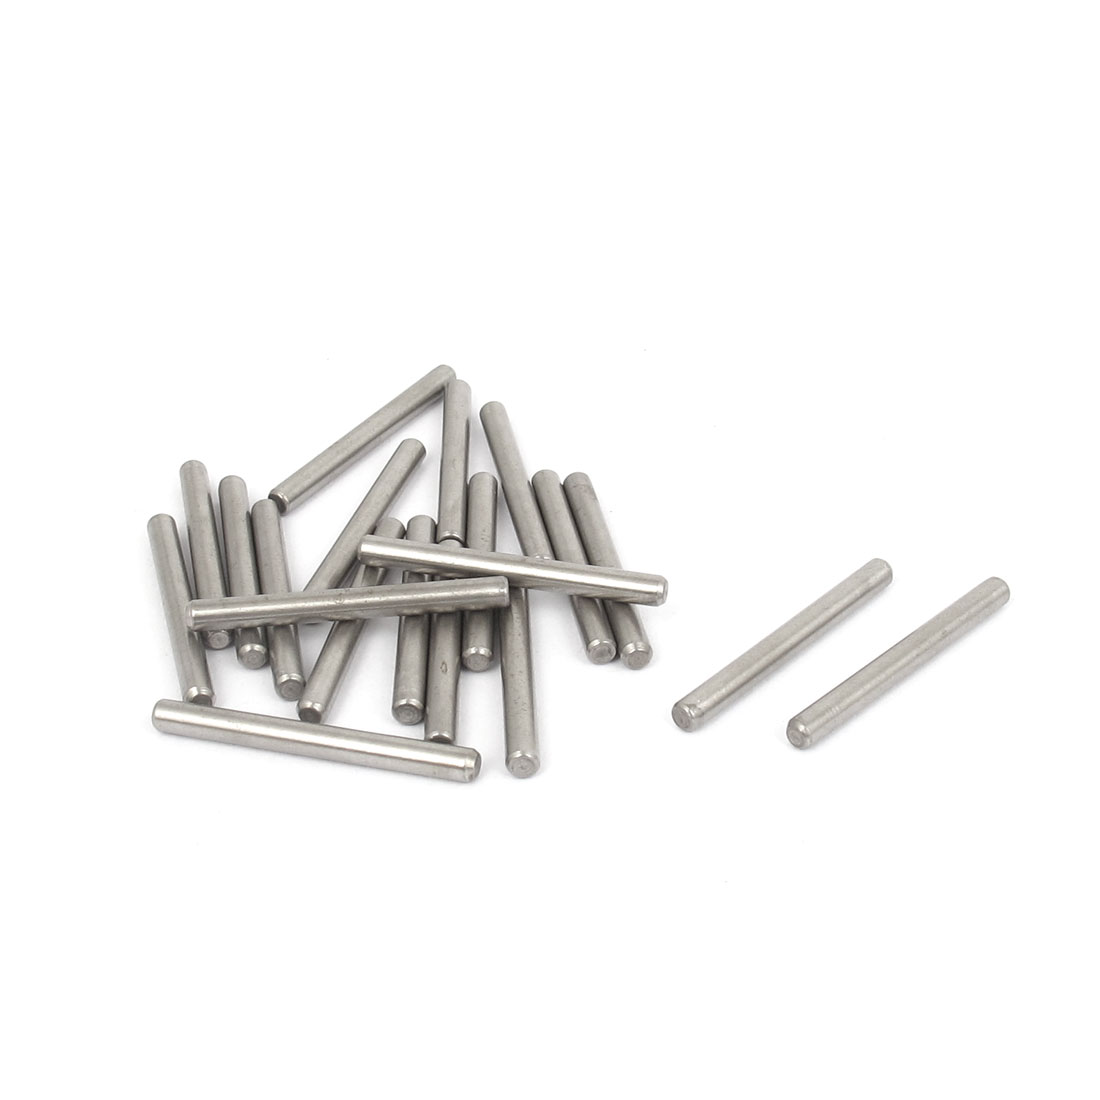 3mmx30mm 304 Stainless Steel Parallel Dowel Pins Fastener Elements 20pcs